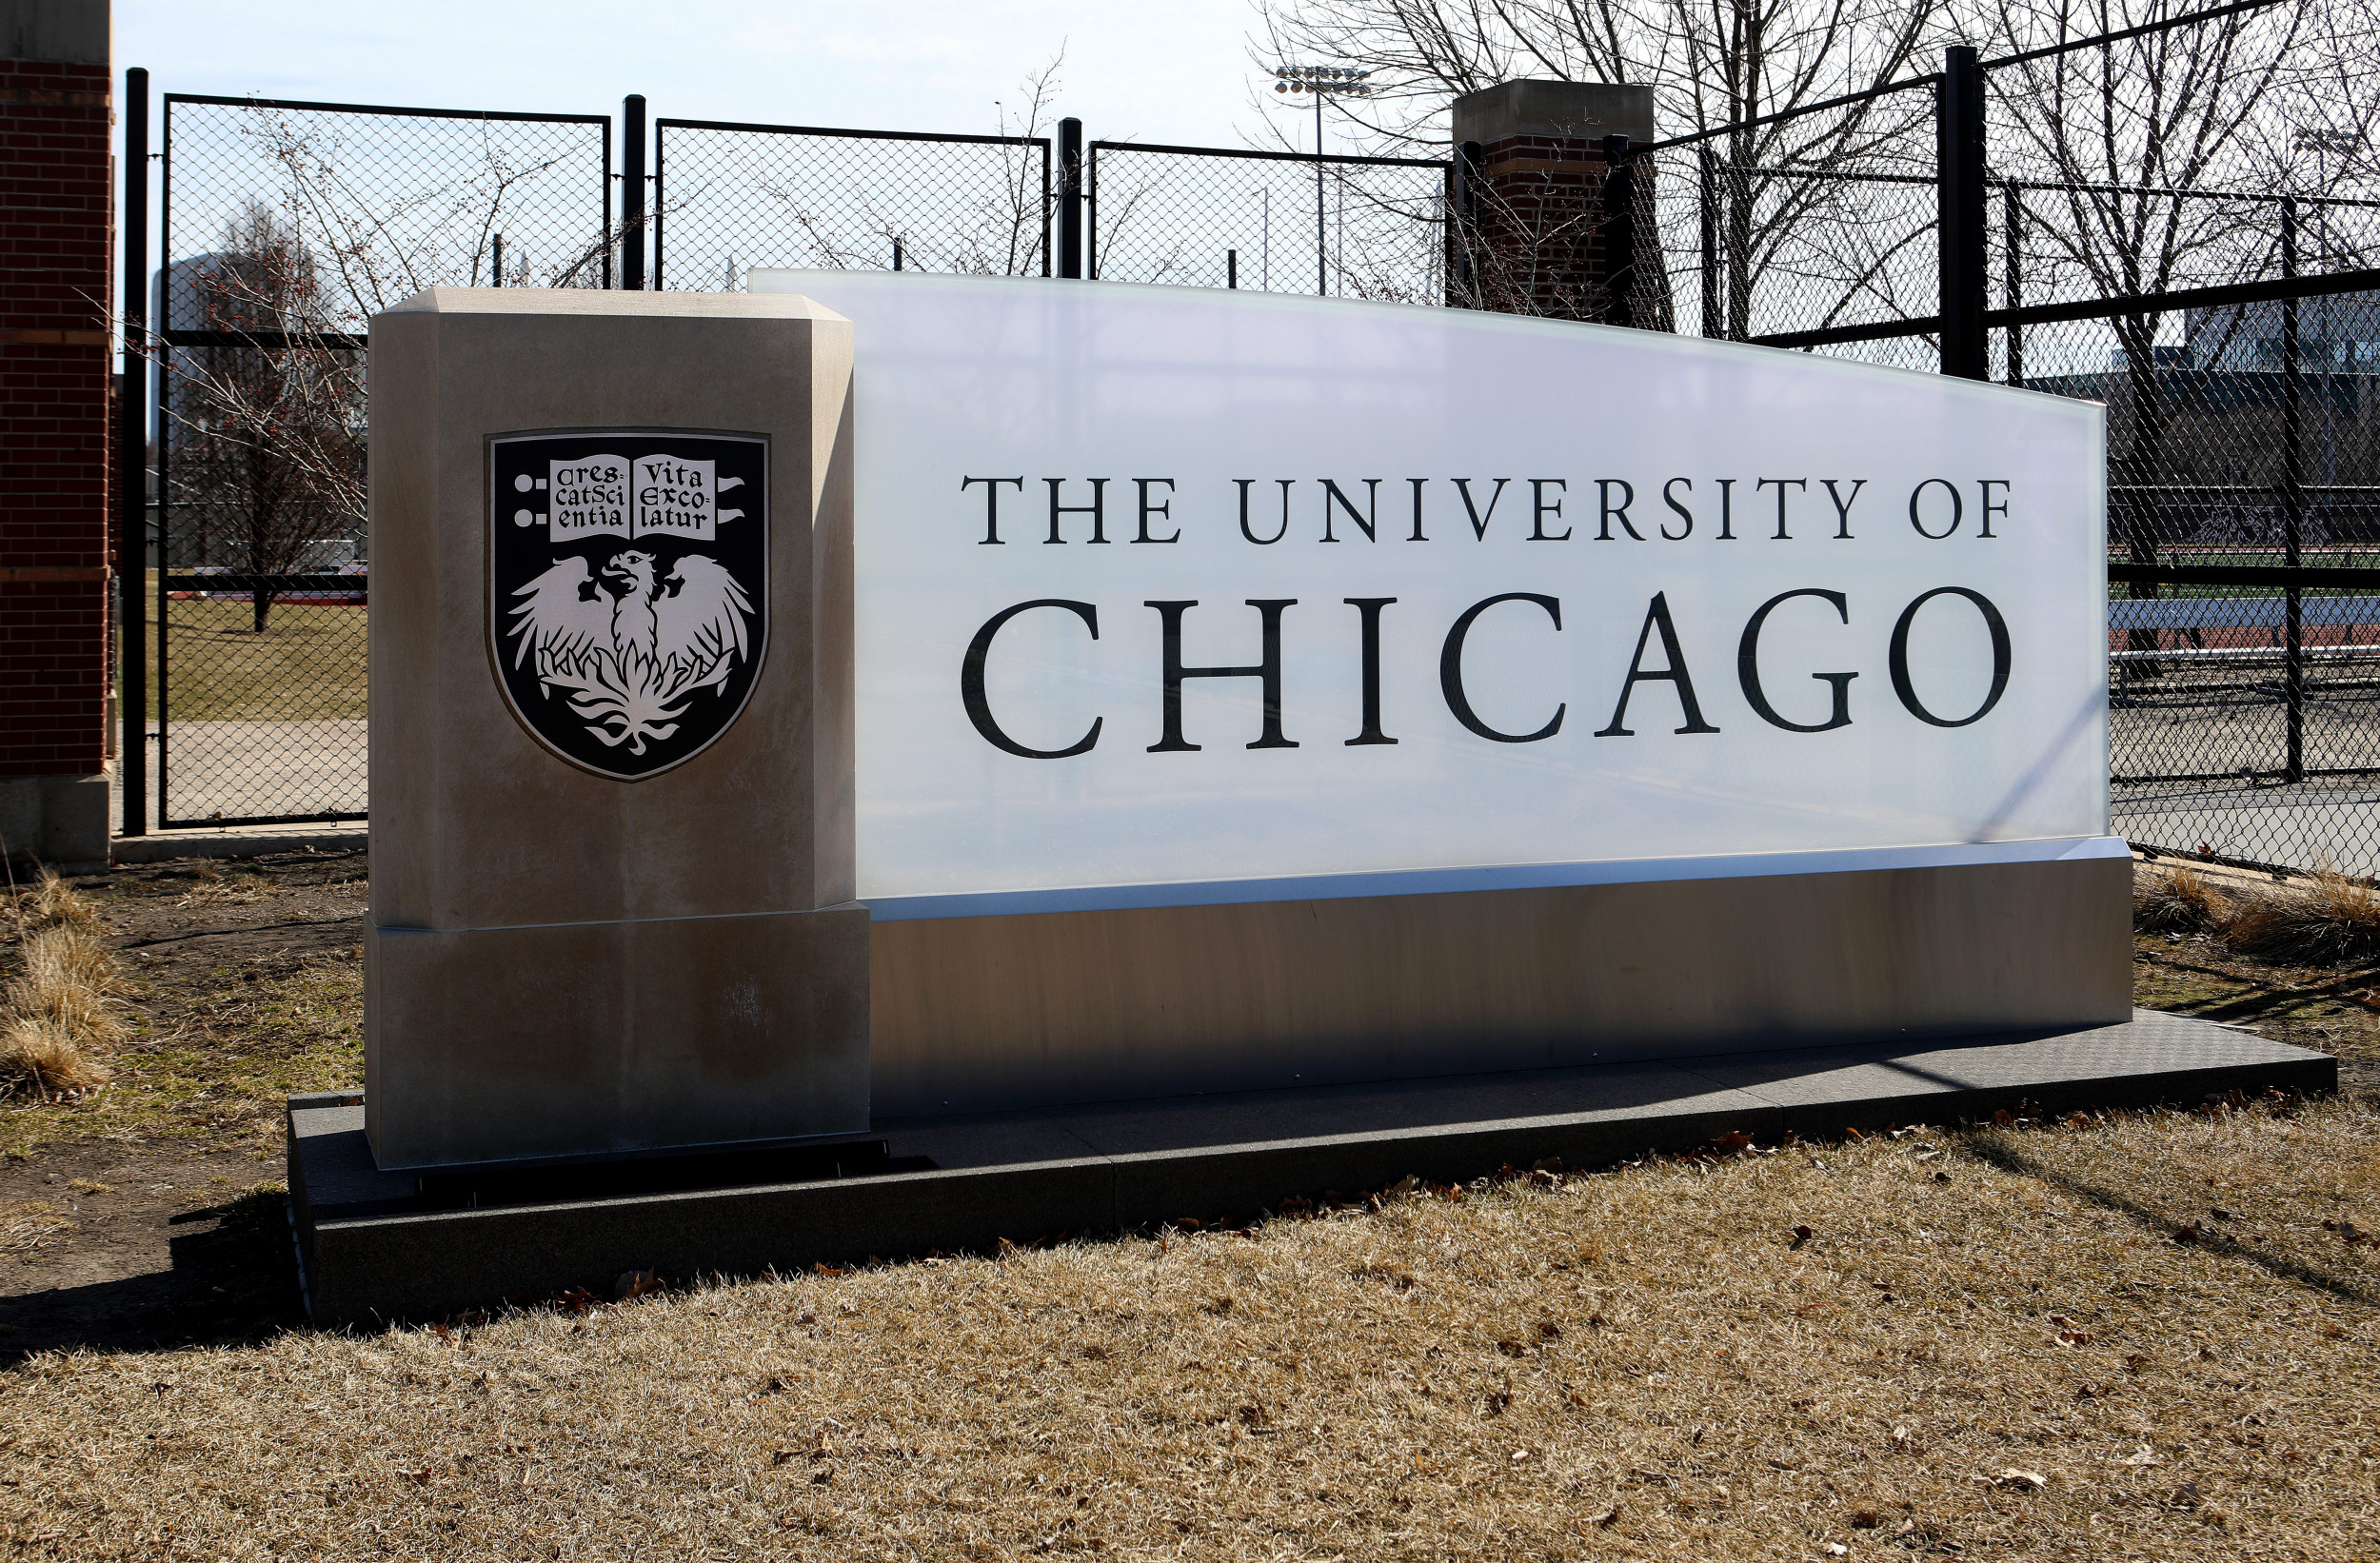 Want a graduate english degree from University of Chicago? This year you'll be in Black studies too